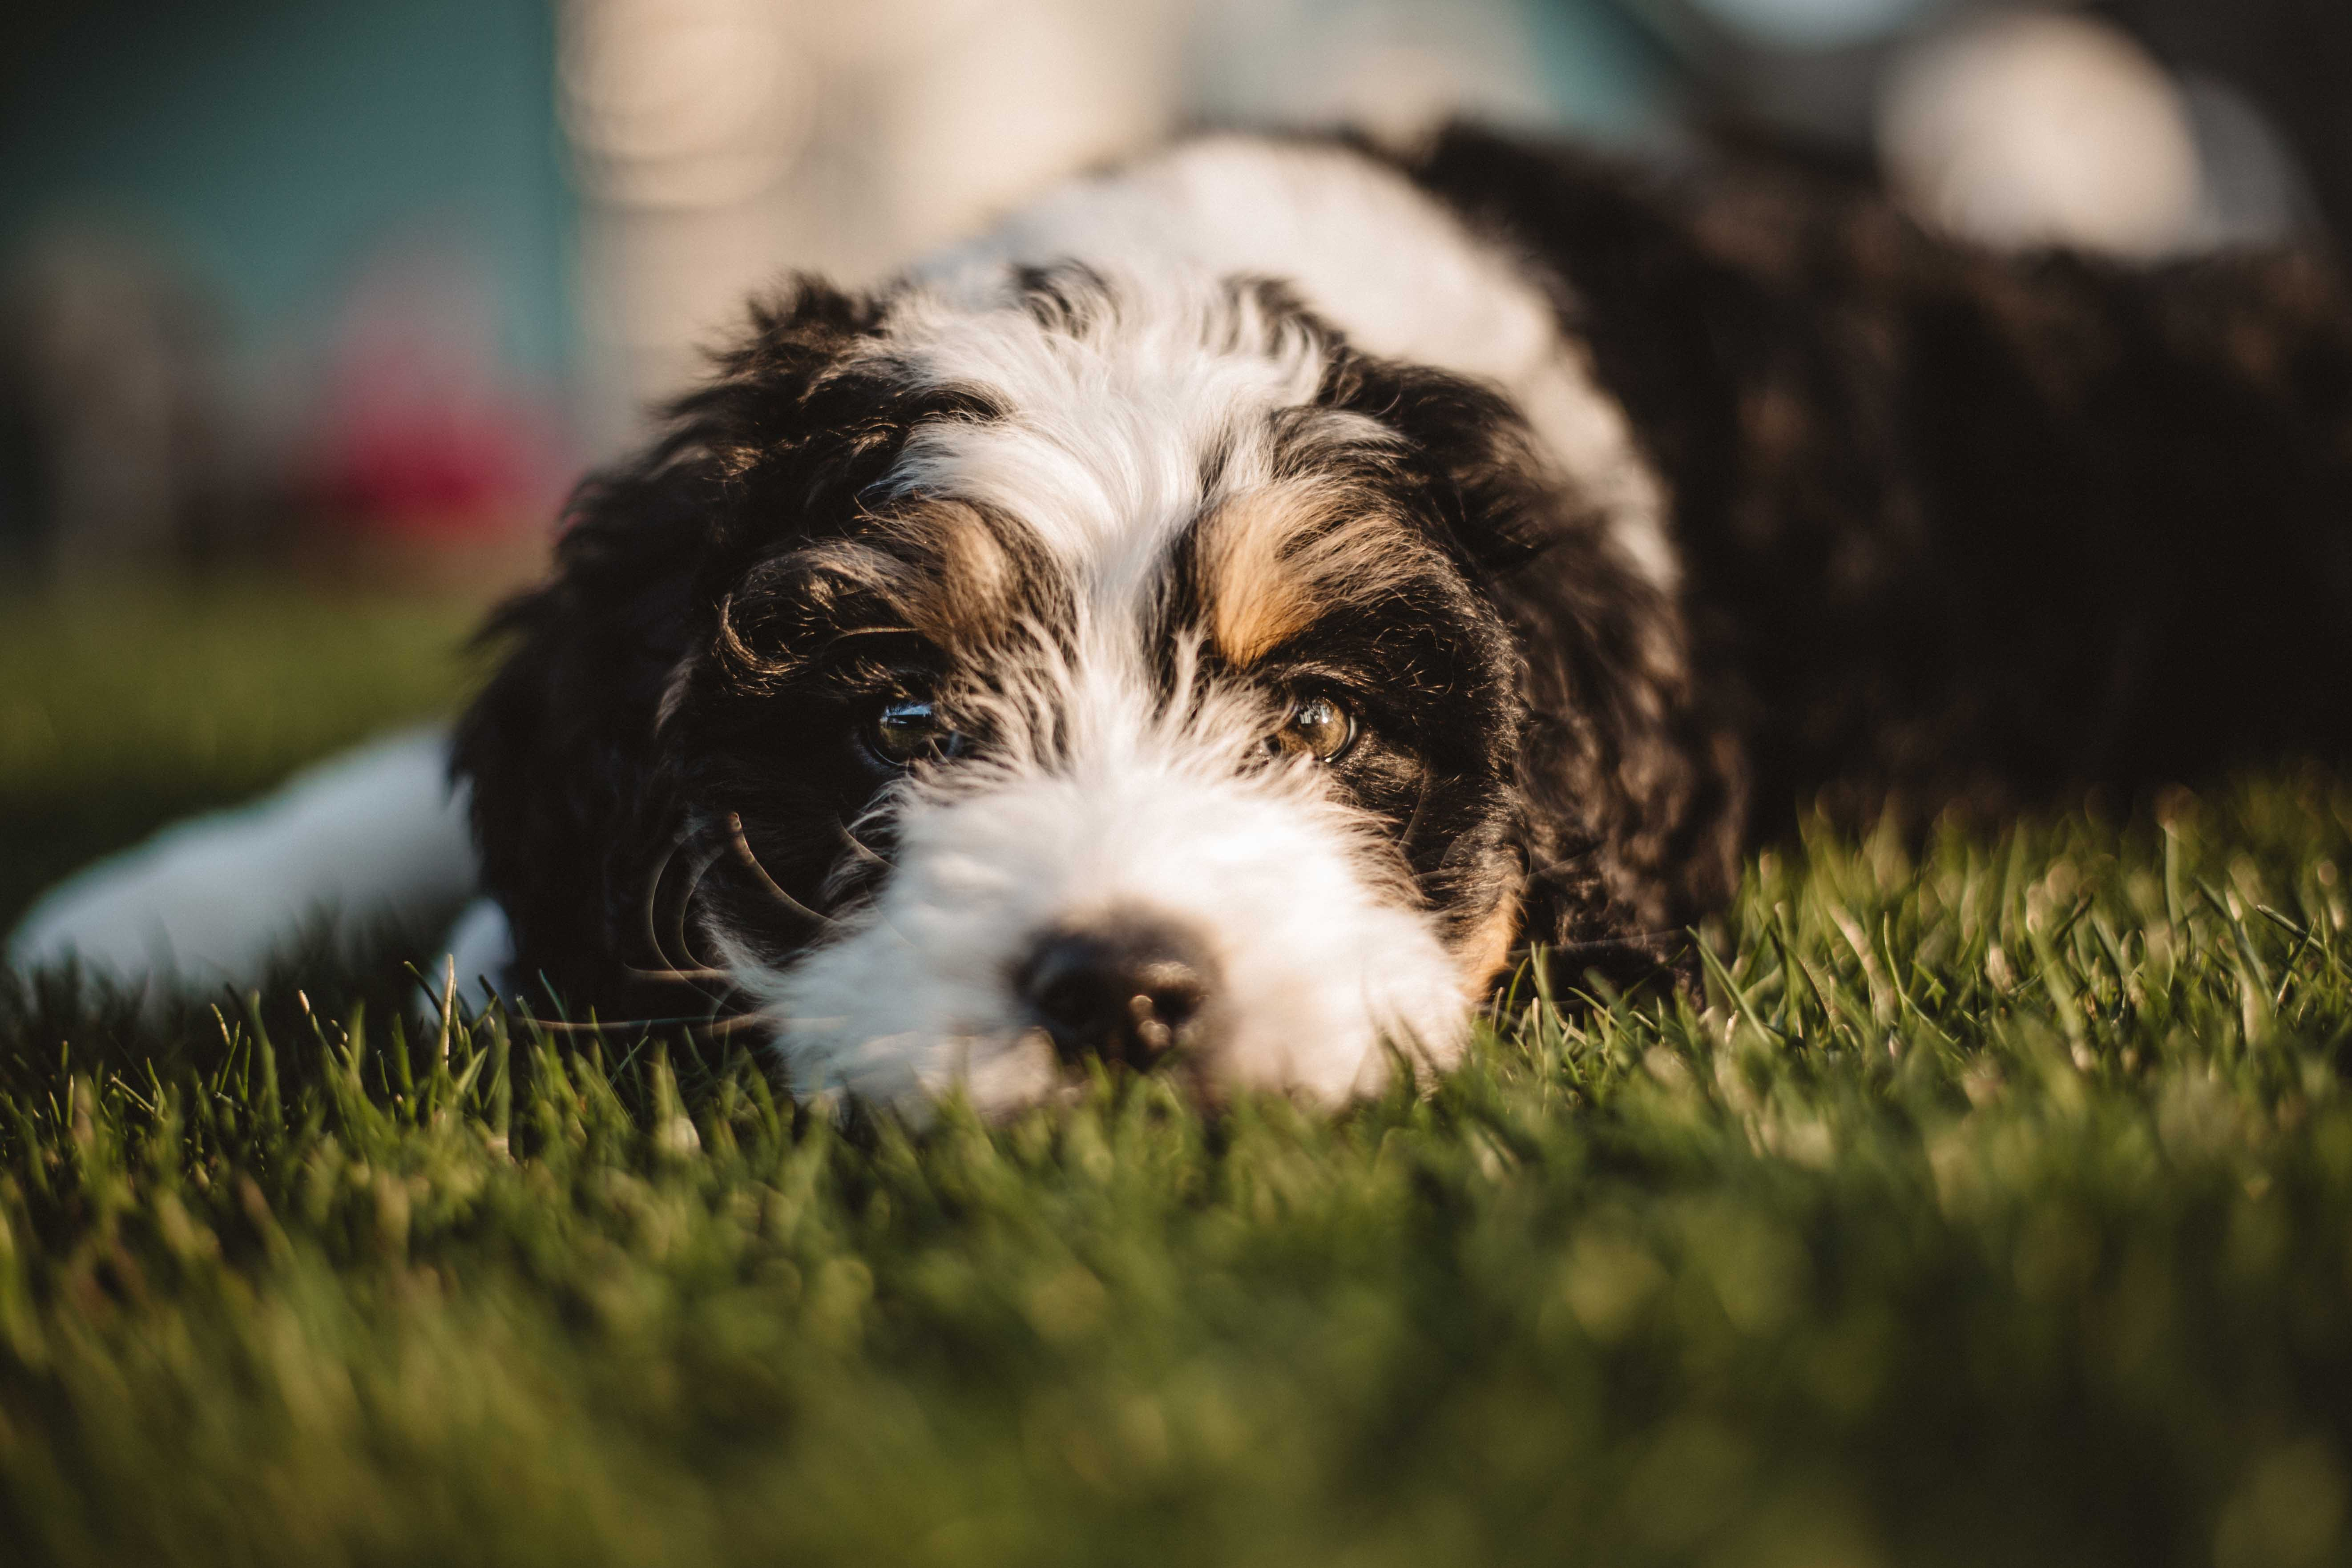 wirehaired brown and white dog lying on grass